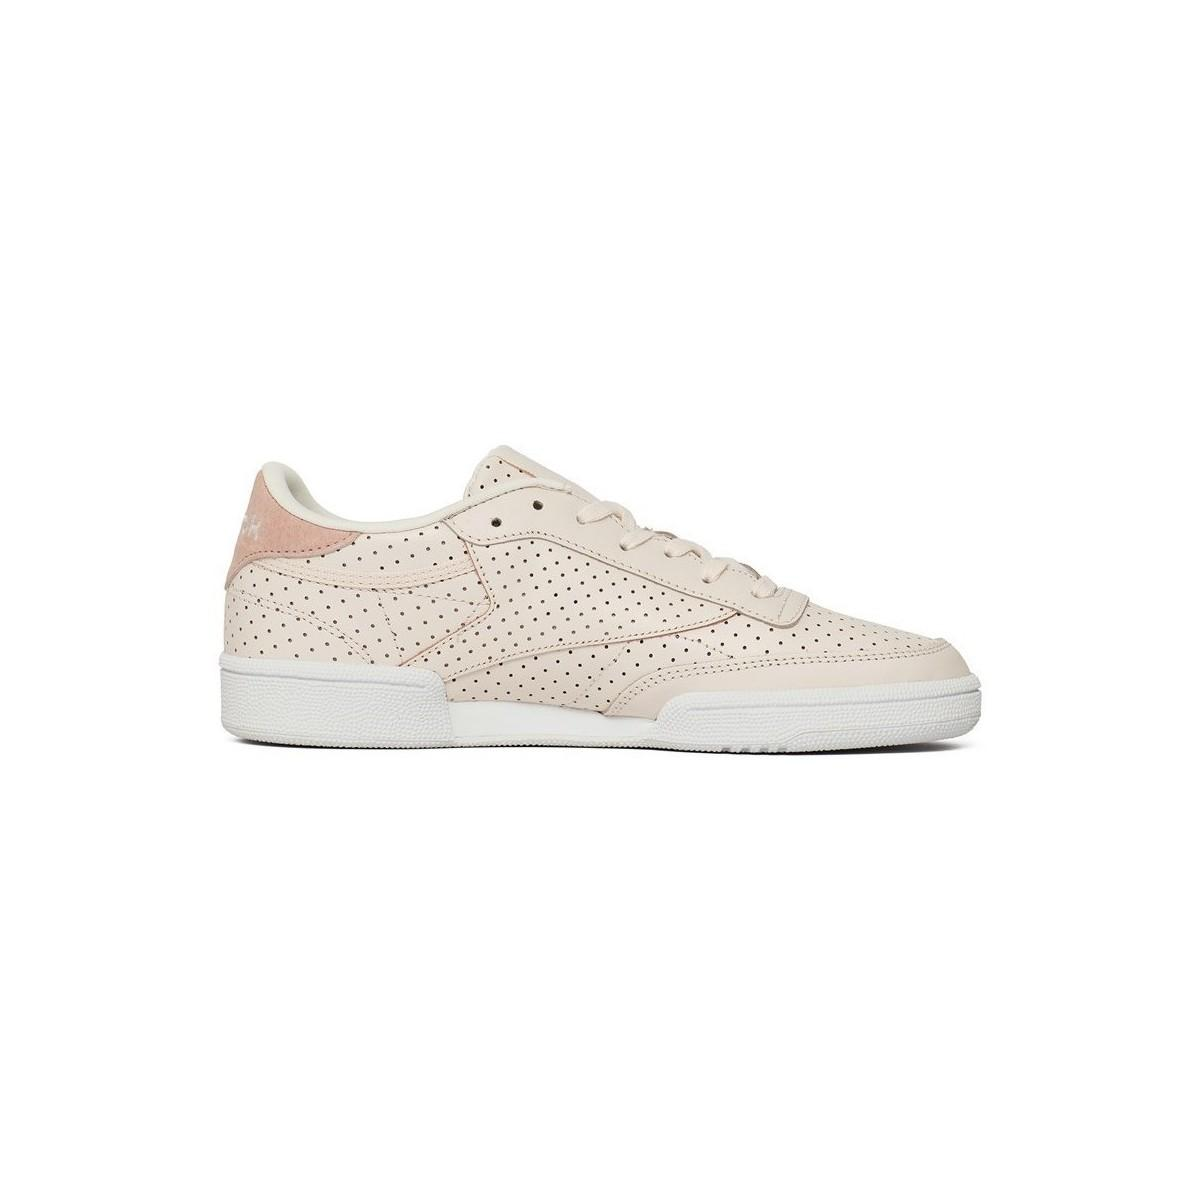 Reebok Club C Popped Perf Women's Shoes (trainers) In Multicolour in White